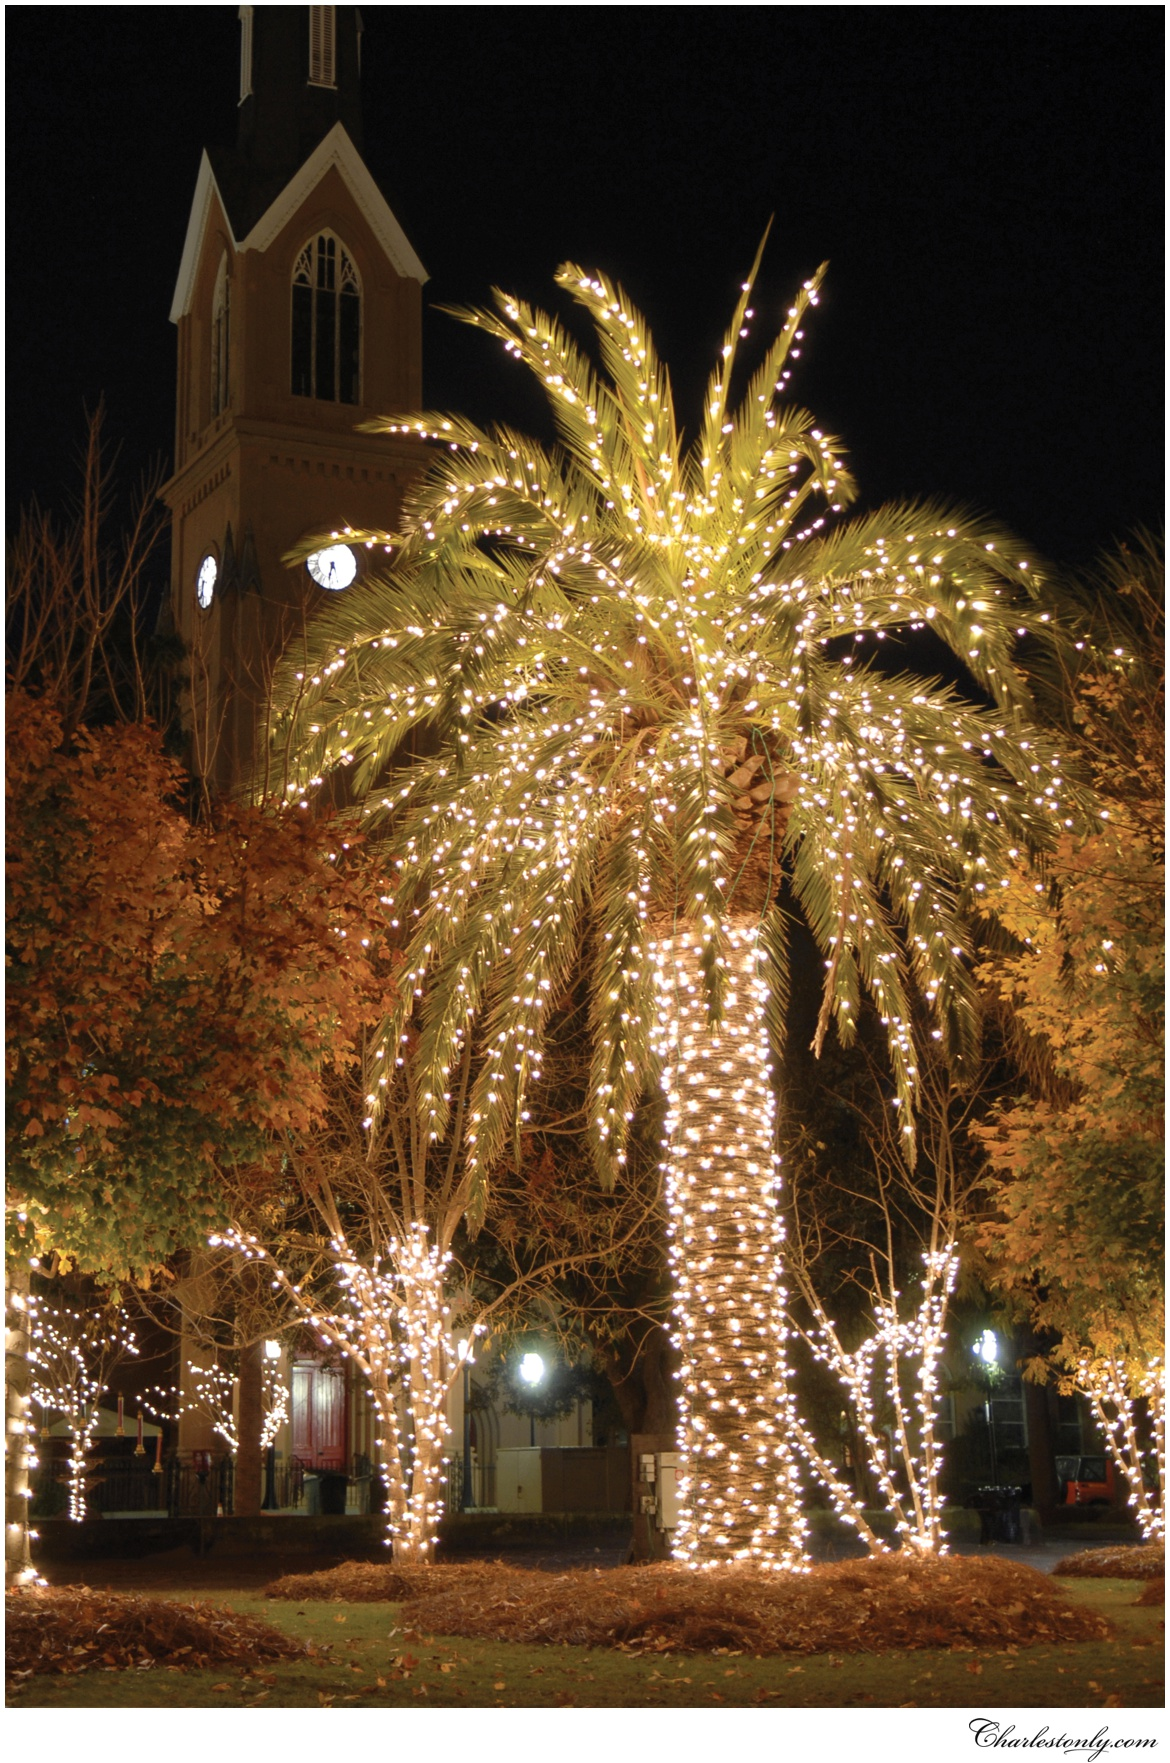 begin planning your holiday getaway and have yourself a merry little christmas in charleston